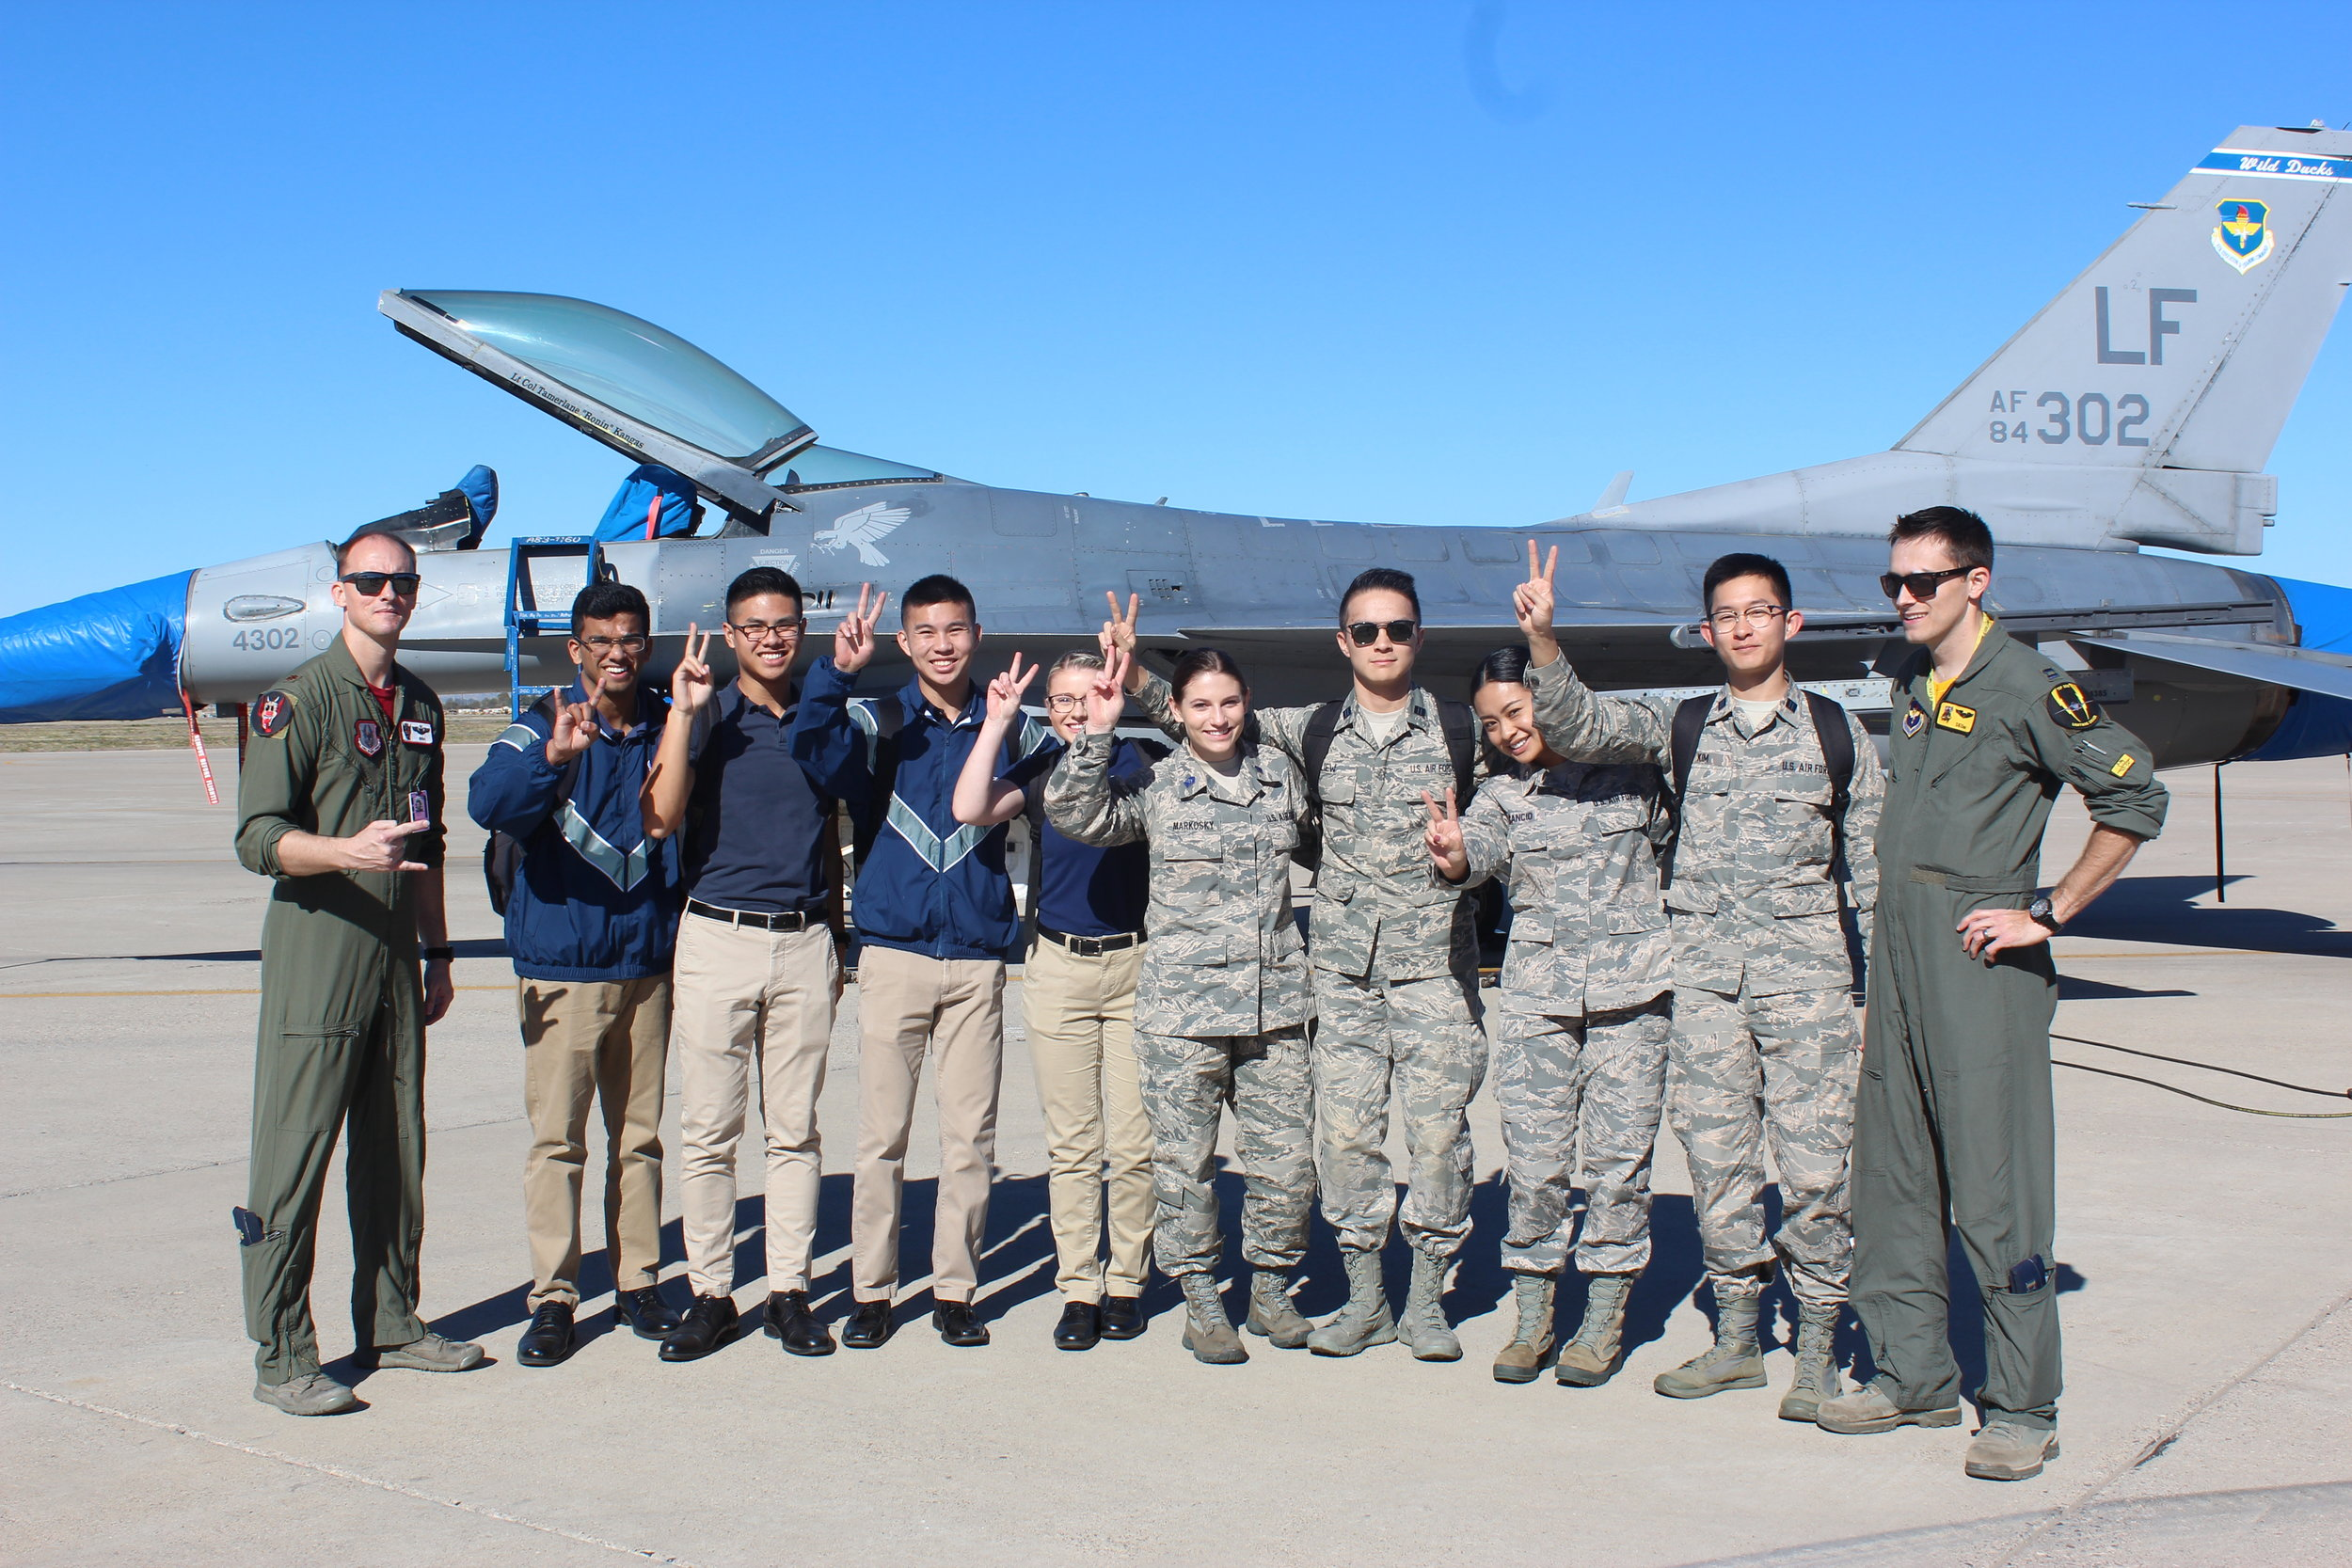 base visits - Cadets visit Air Force bases as part of their professional development requirement. Most recently, Detachment 060 visited the Test Pilot School at Edwards AFB and met several USAF Thunderbirds pilots at Luke AFB in Arizona. These visits provide cadets with an idea of what life is like after commissioning as an officer and helps them explore potential career fields. Traveling out-of-state is an incredible opportunity for cadets to bond and boost morale during challenging training months.